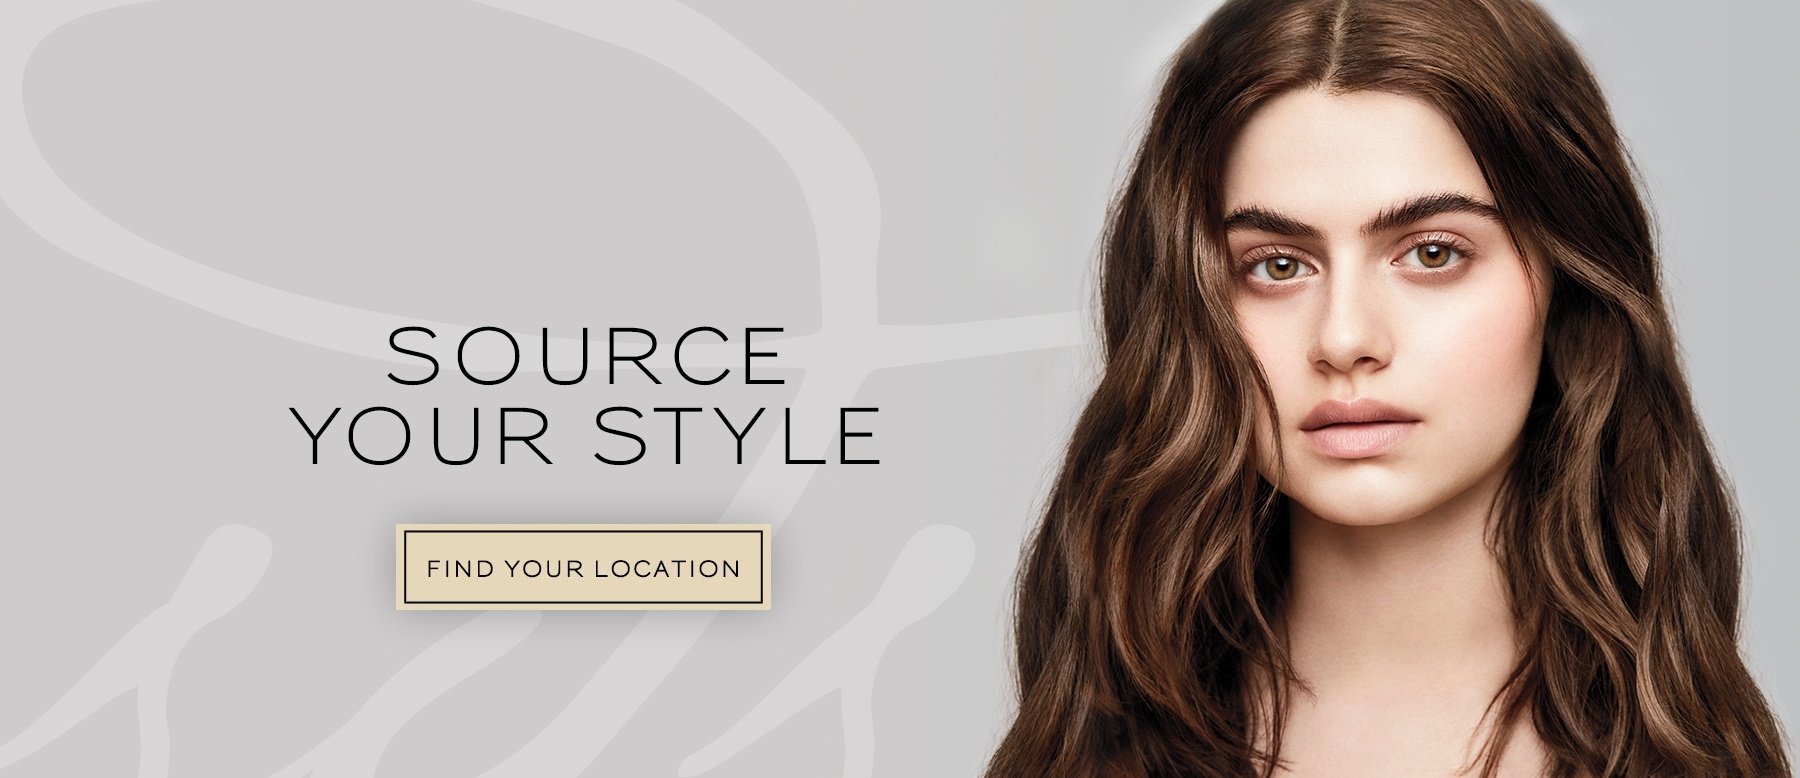 Source Your Style